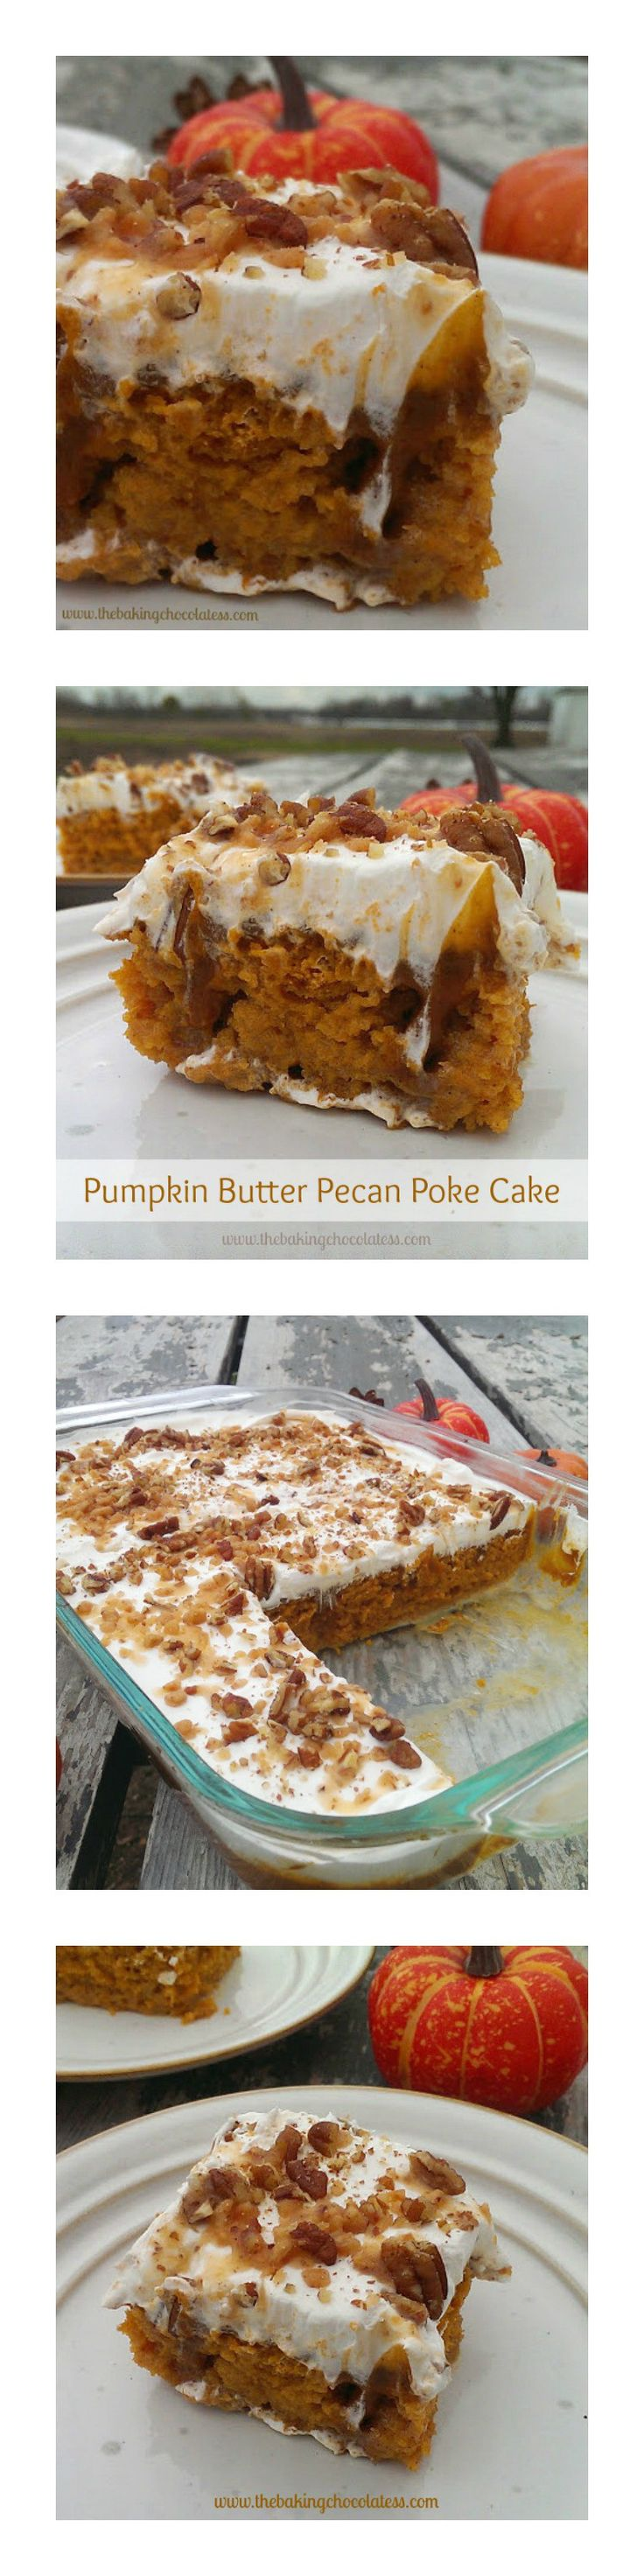 Pumpkin Butter Pecan Poke Cake – The Baking ChocolaTess